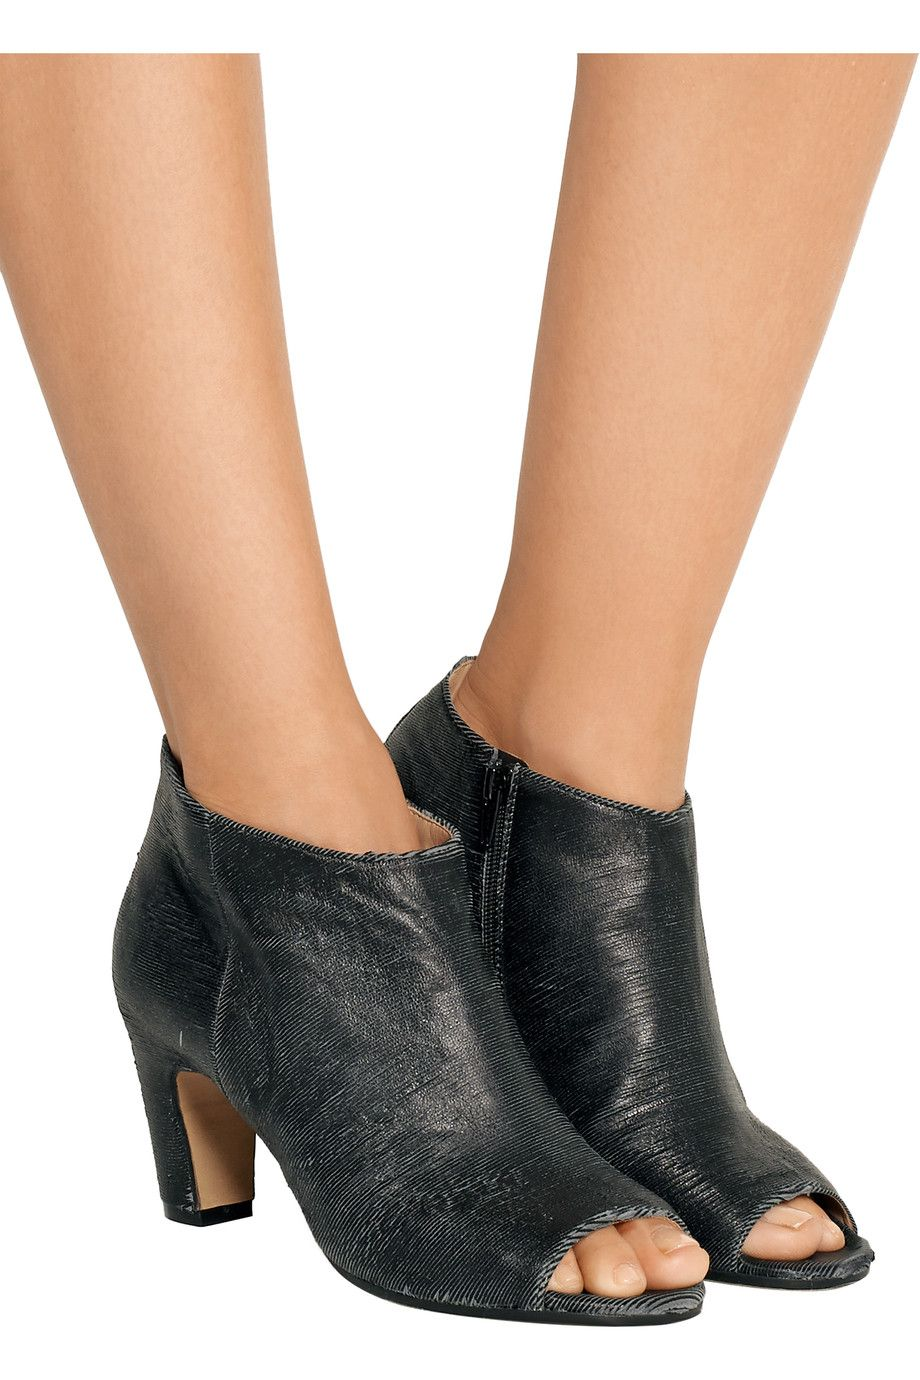 Maison Margiela Textured Peep-Toe Ankle Boots outlet ebay cheap sale affordable official cheap price sale low shipping xvNmYvWiwW